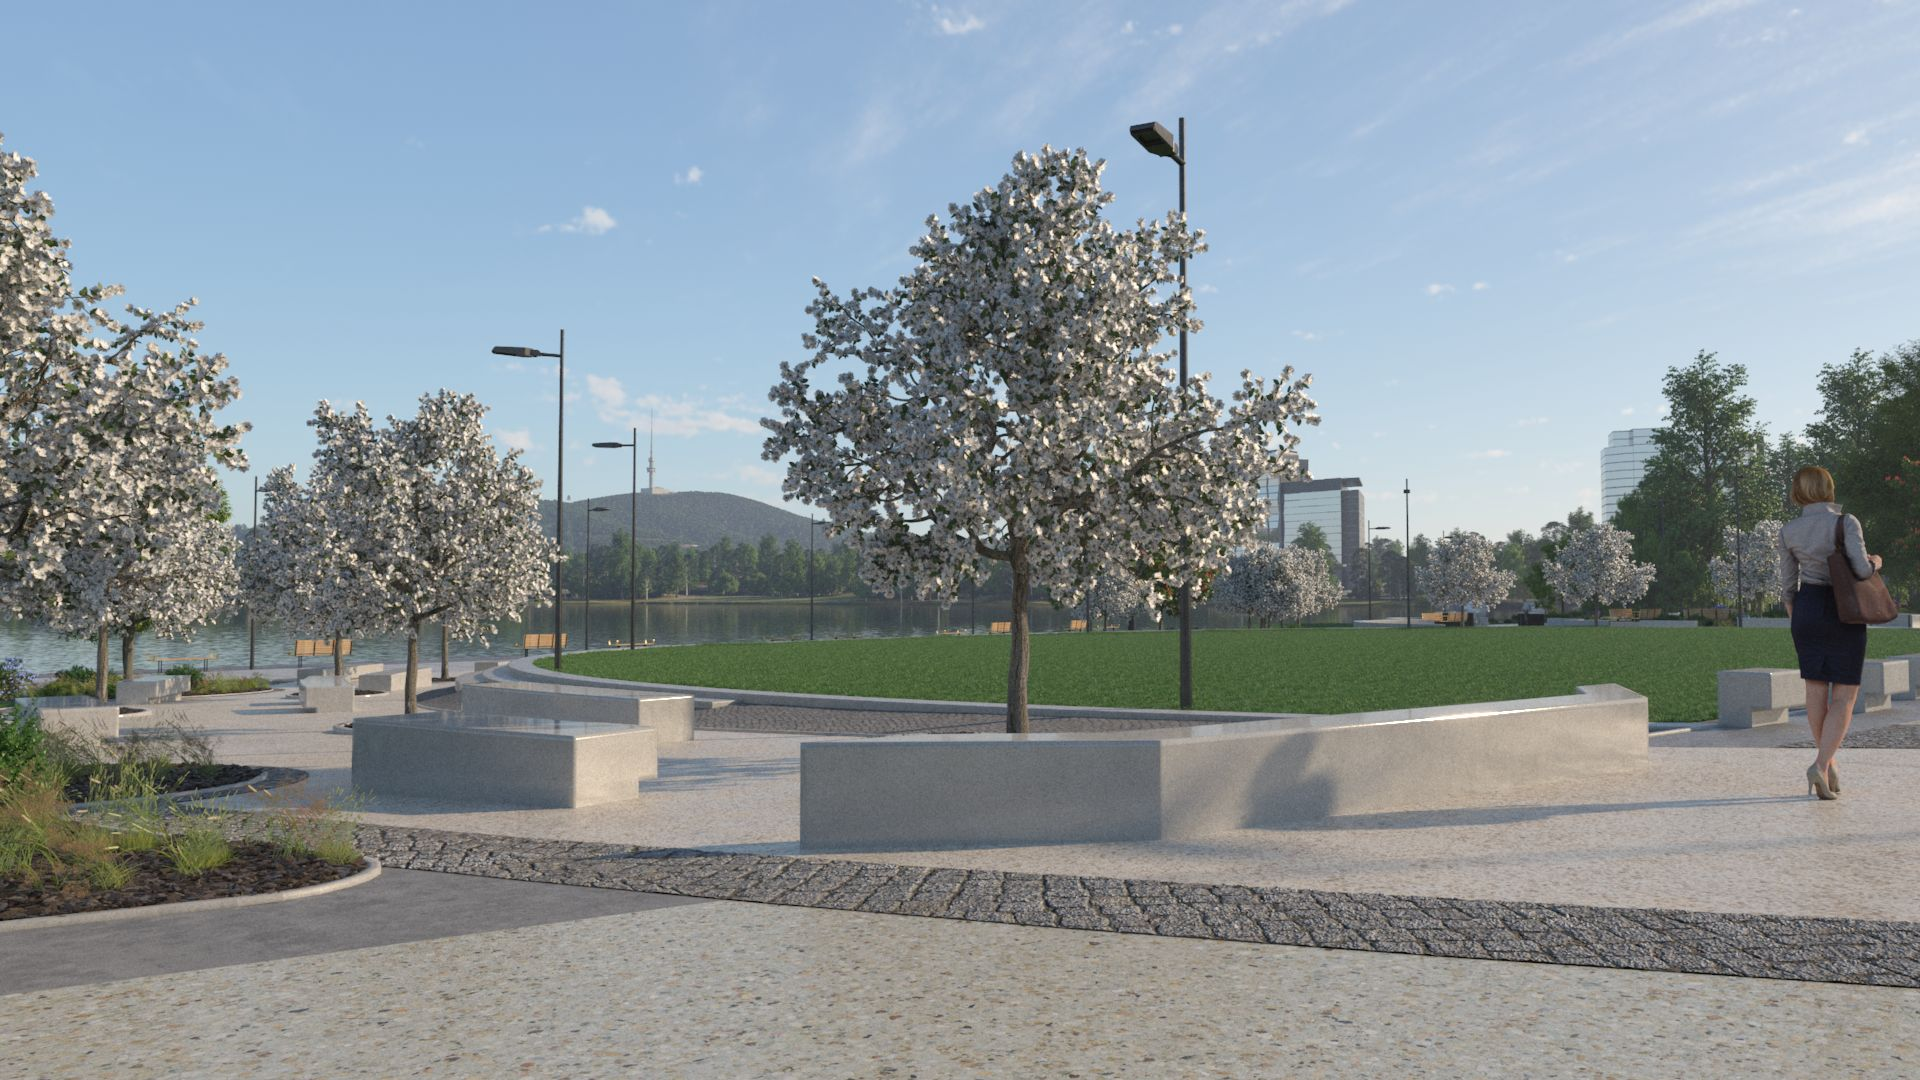 3D image of the centre park area overlooking Lake Burley Griffin.